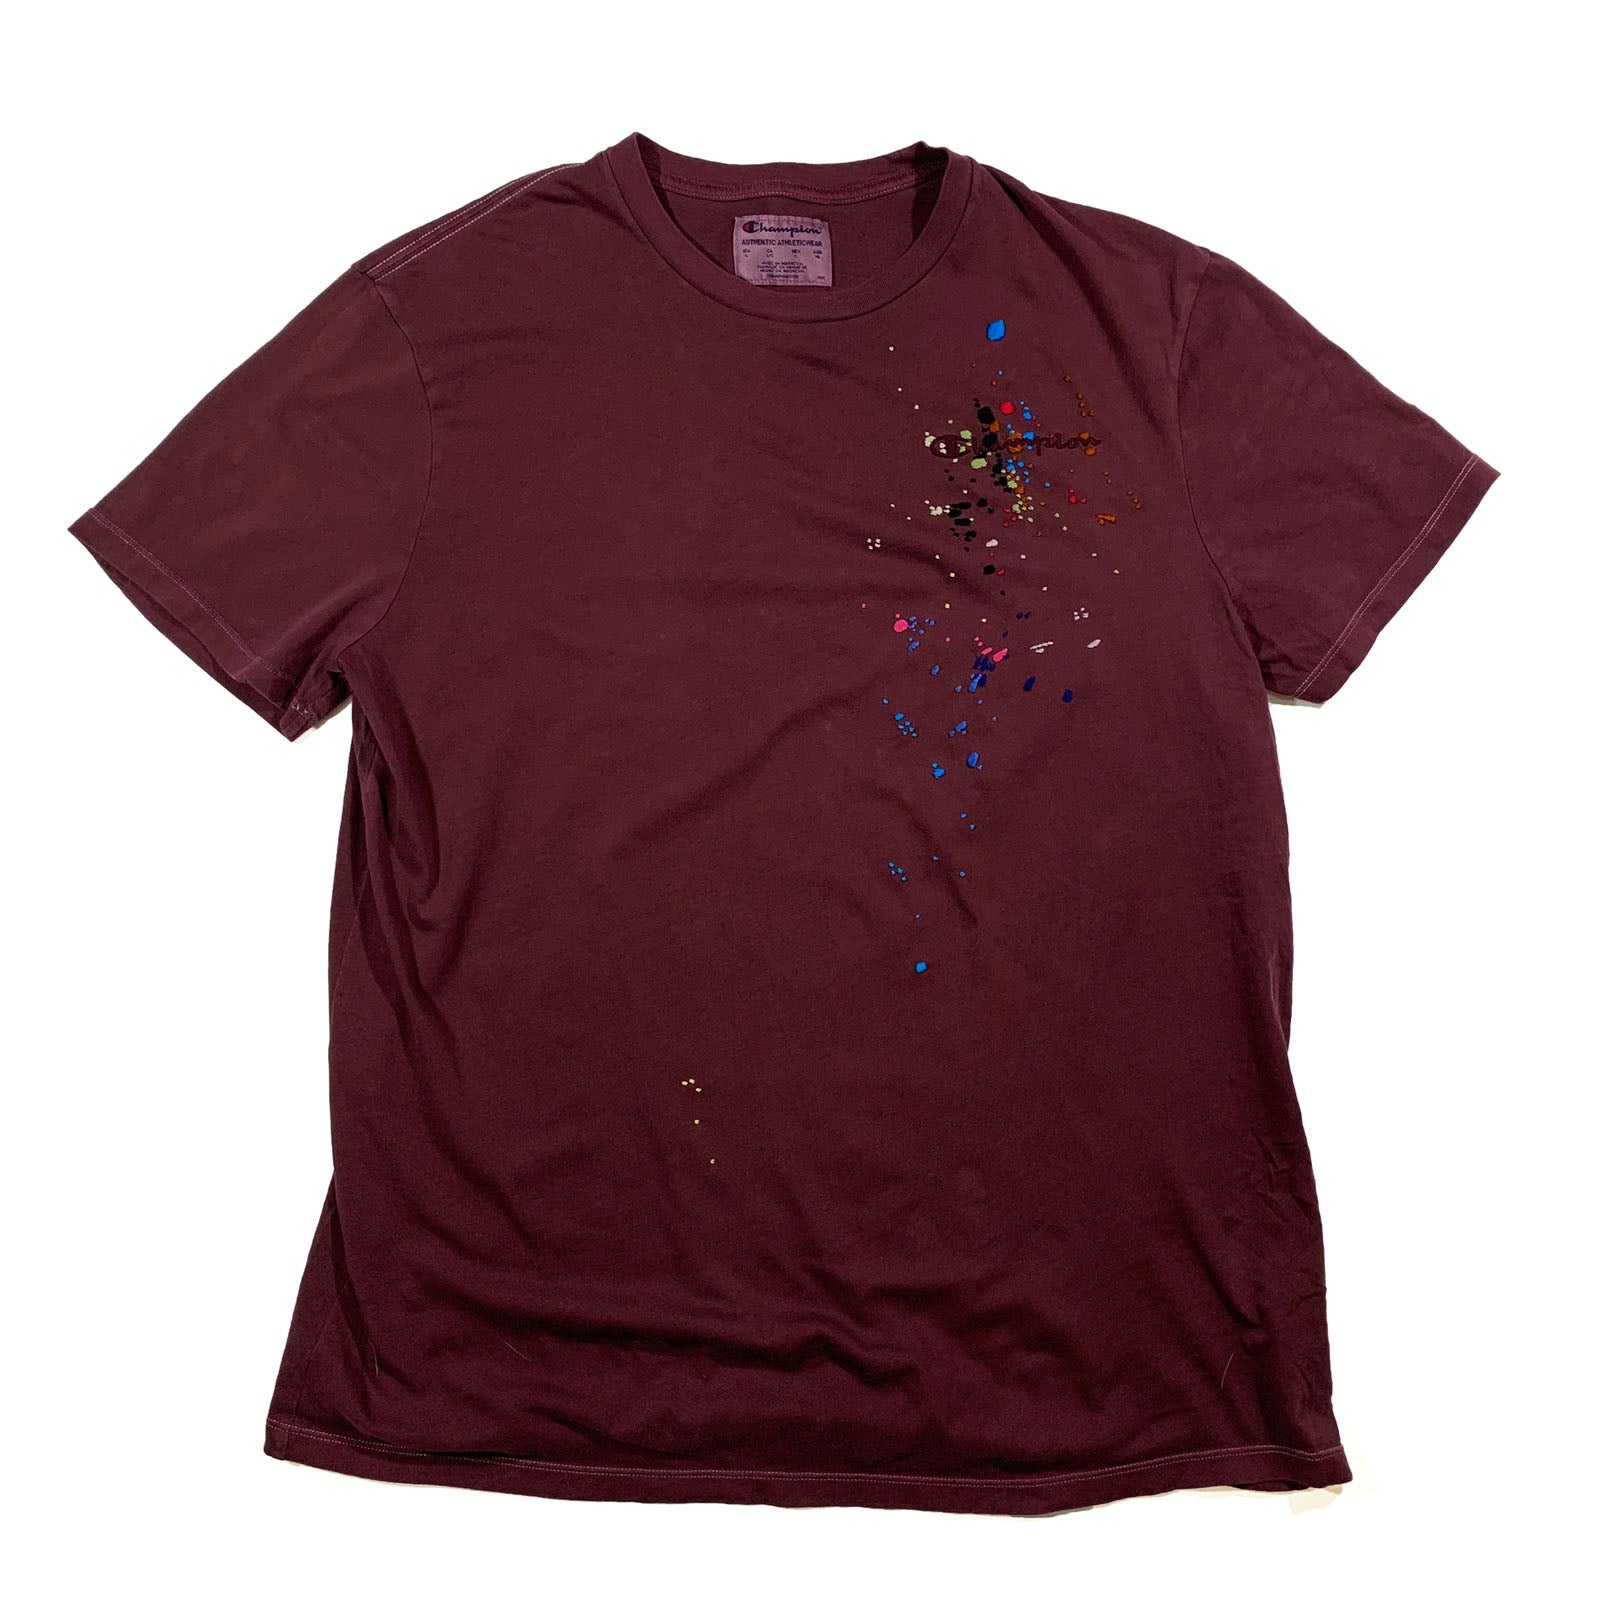 "BANDULU "" GRAPES GONE BAD "" VINTAGE CHAMPION TEE L"